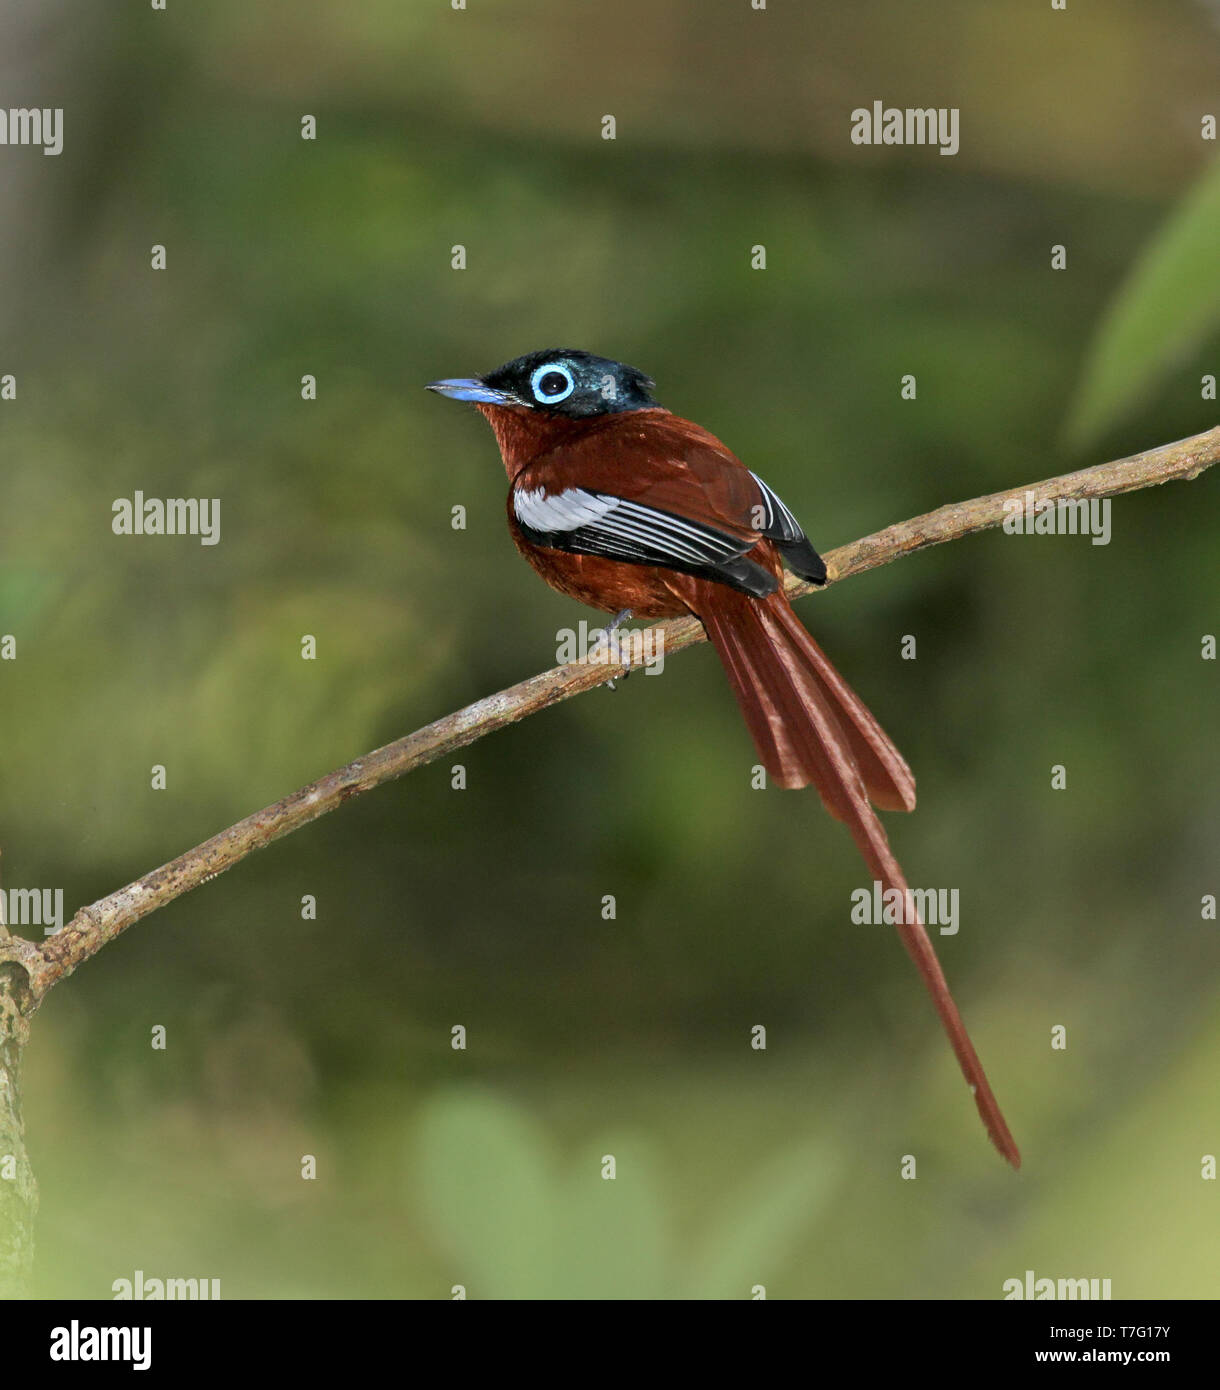 Male Madagascar Paradise Flycatcher (Terpsiphone mutata) also known as Malagasy paradise flycatcher, perched on  a twig in Madagascar. Stock Photo